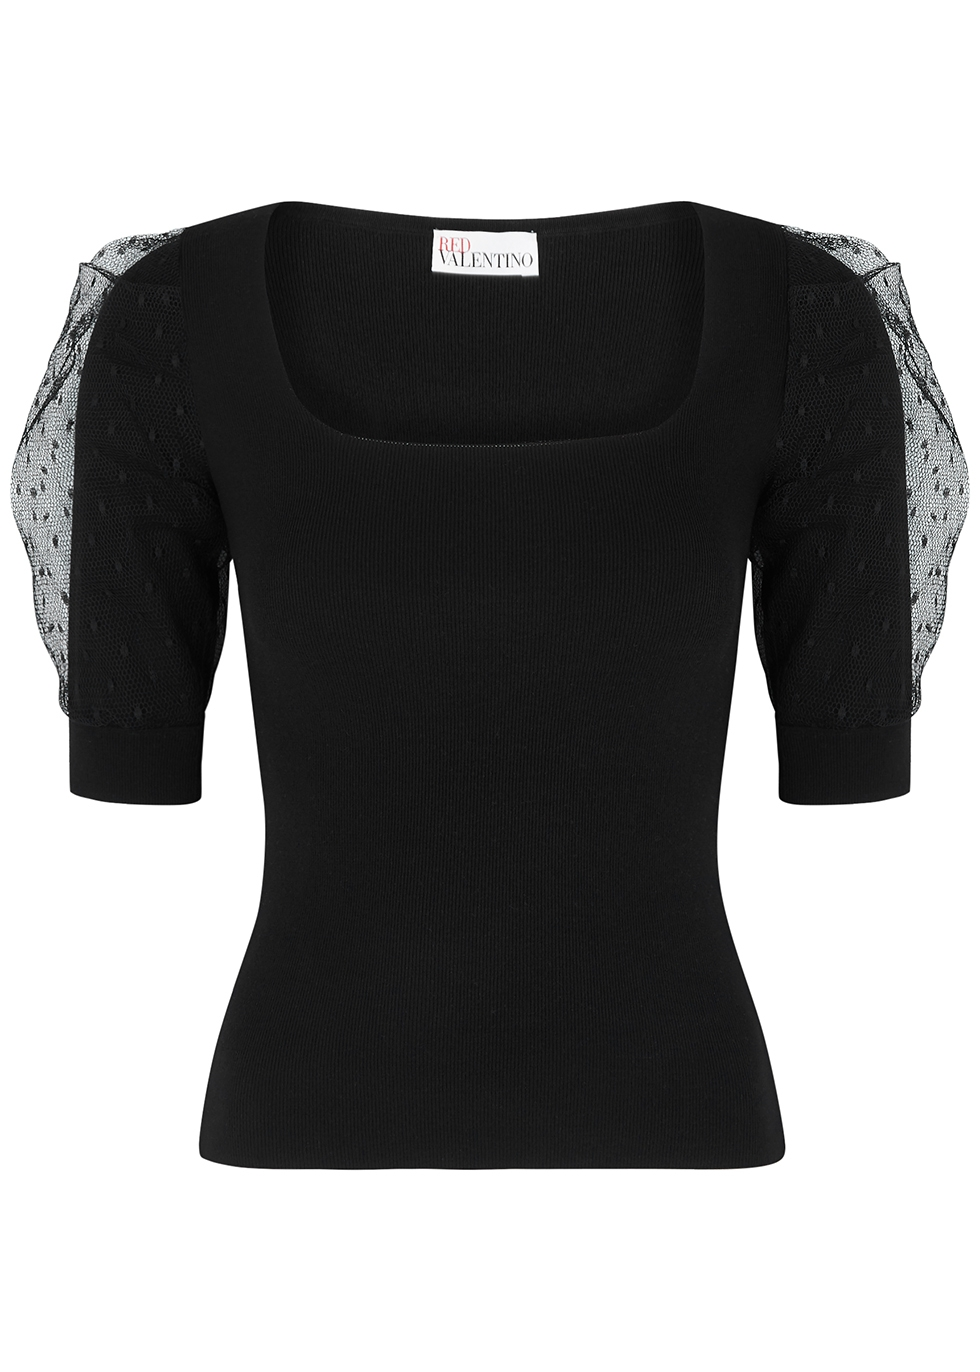 Black stretch-knit top